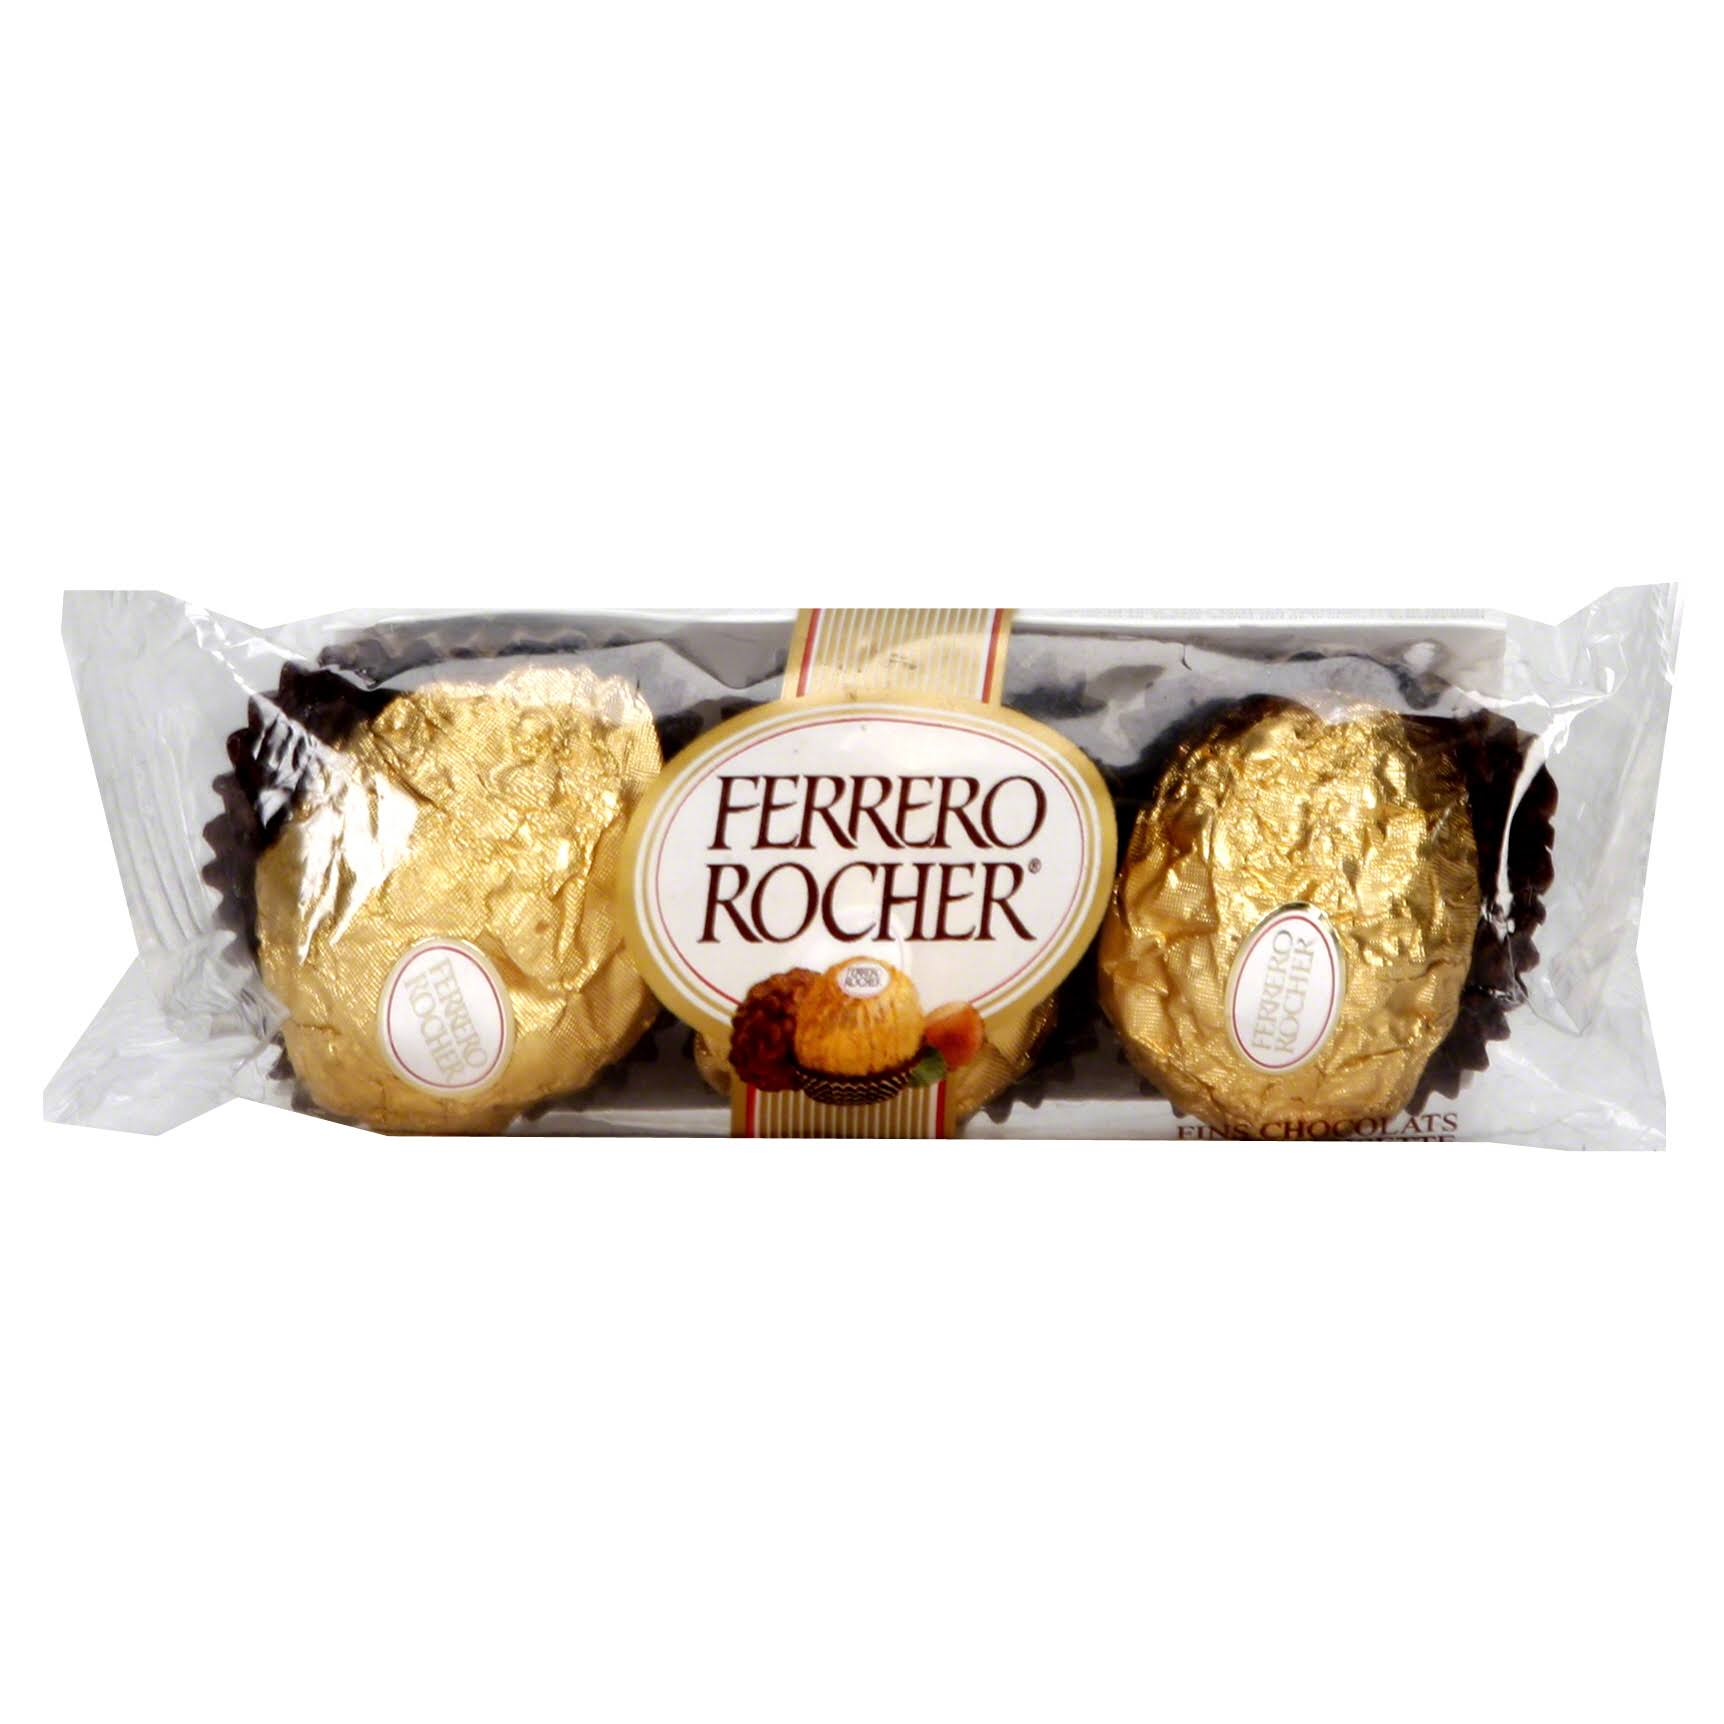 Ferrero Rocher Fine Chocolate, Hazelnut - 1.3 oz